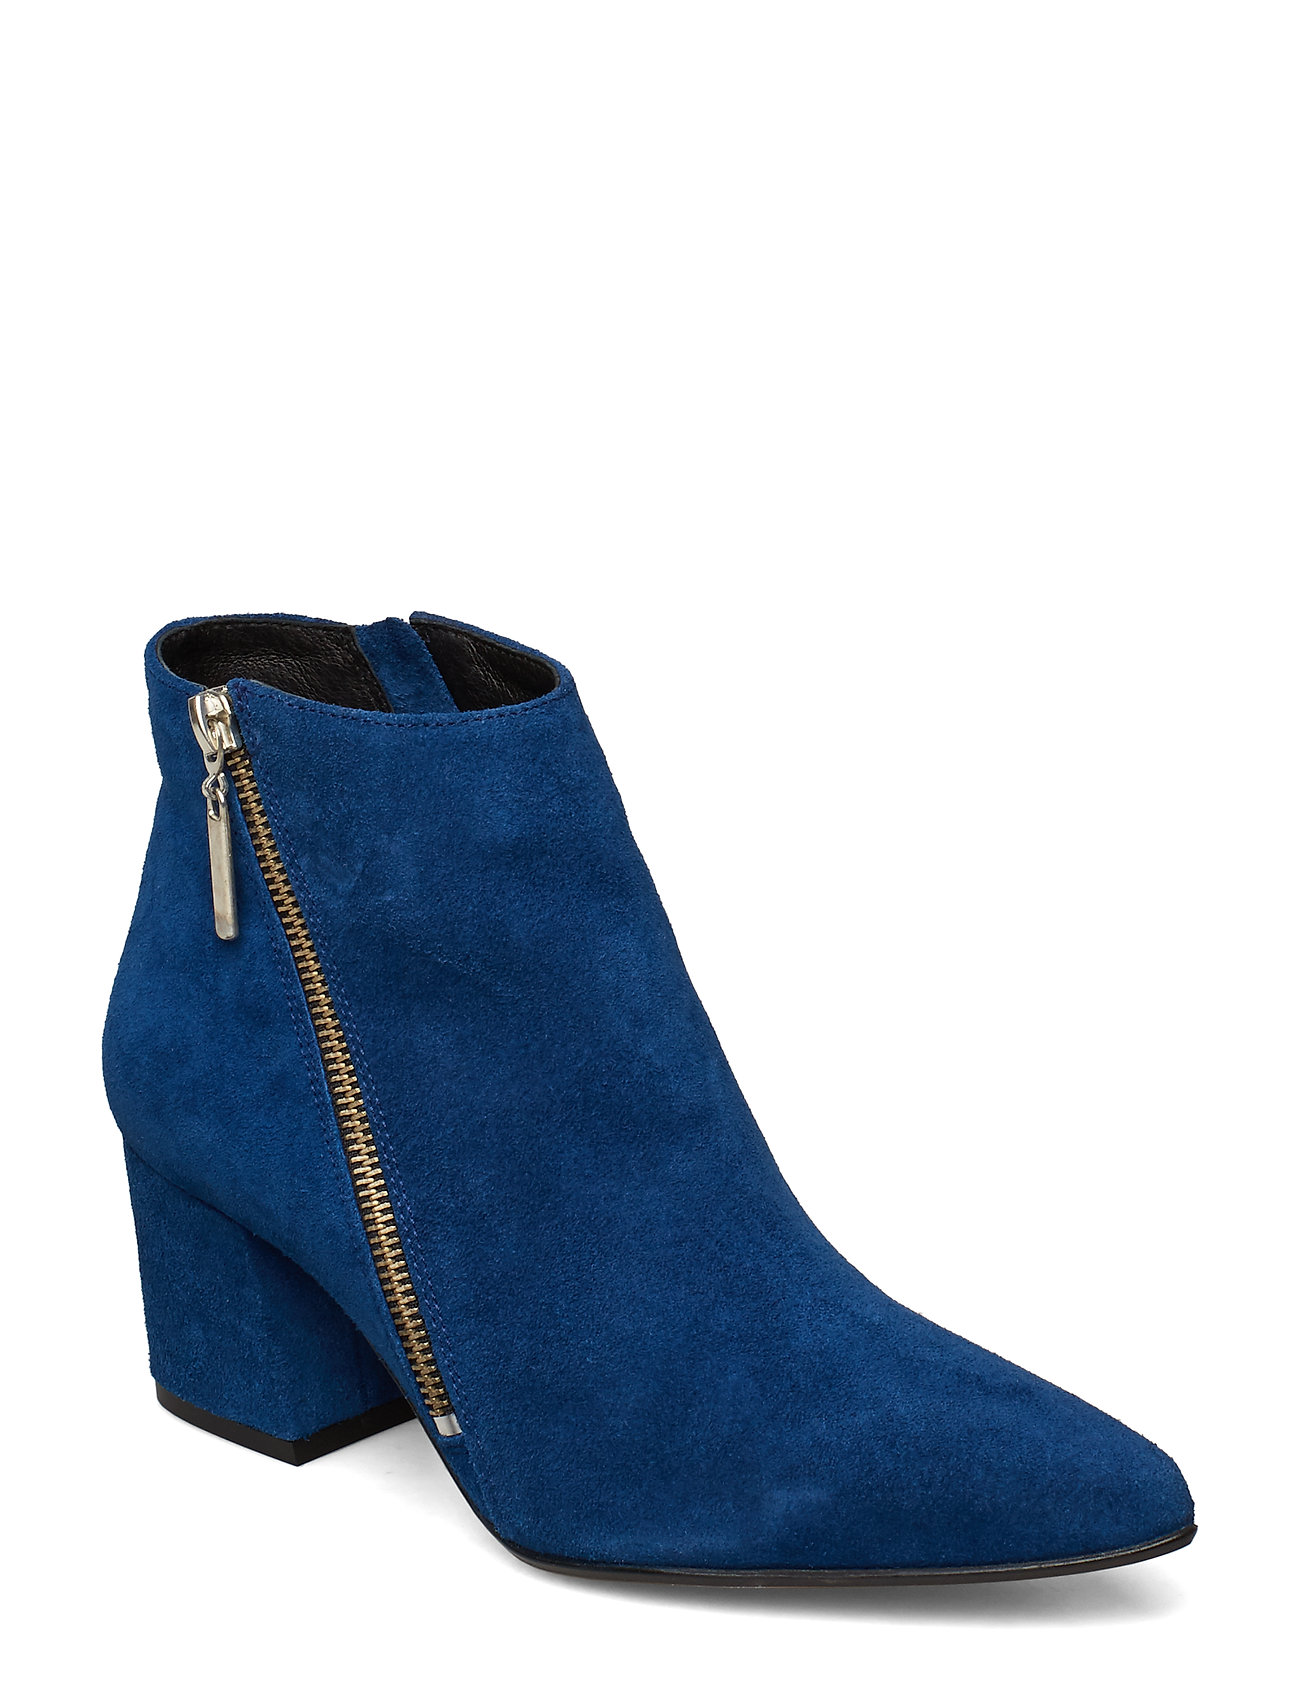 Image of Biacalais Suede Ankle Boot Shoes Boots Ankle Boots Ankle Boots With Heel Blå Bianco (3195668677)